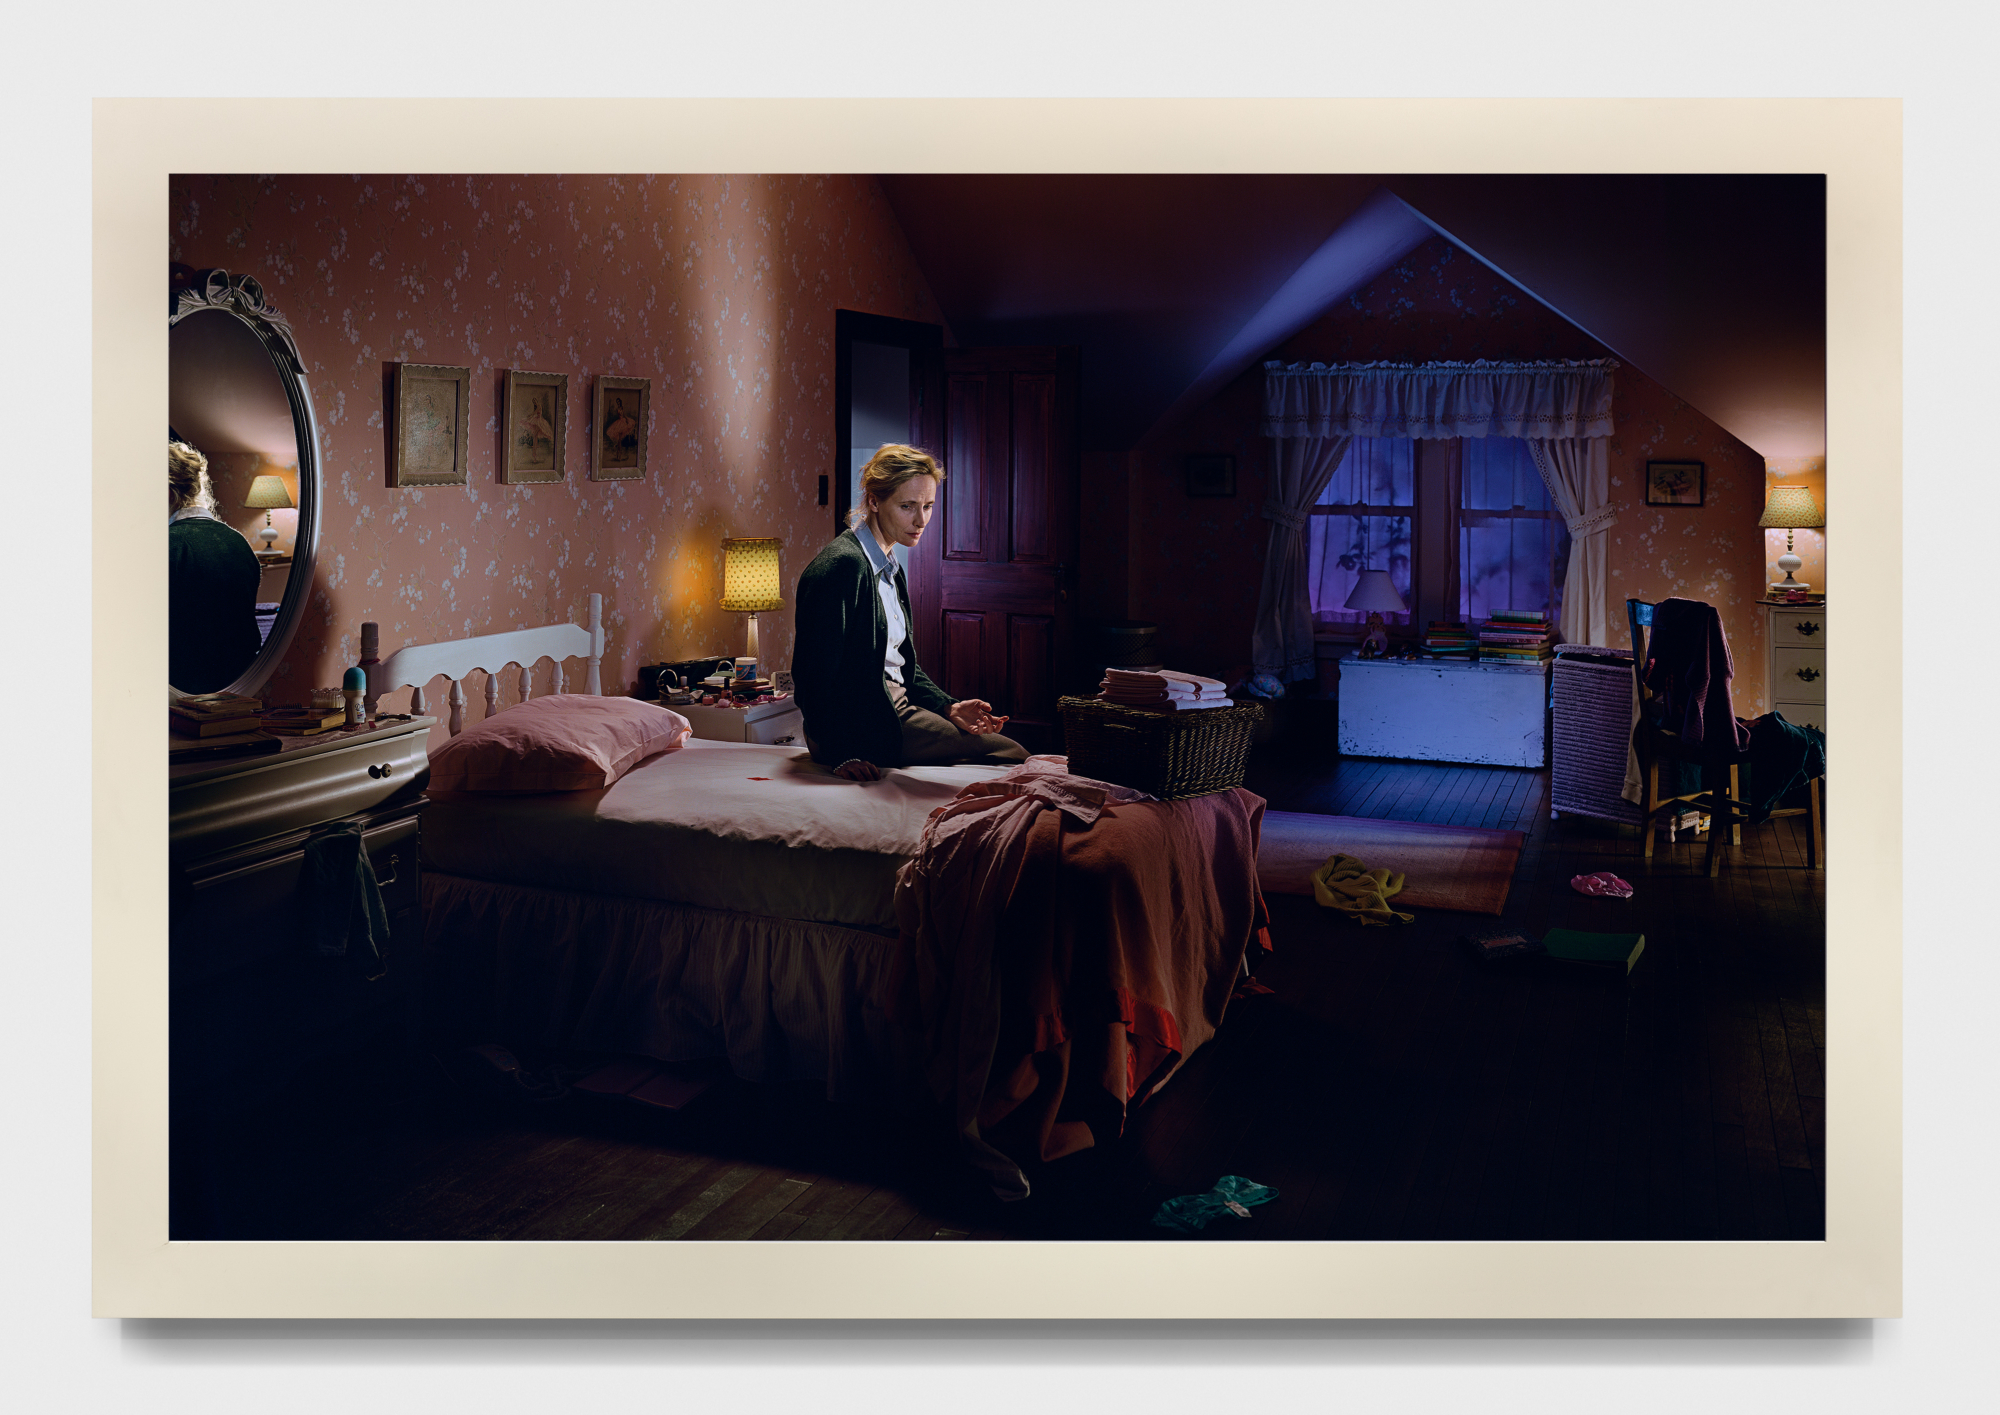 The title says it all: Mother on bed with blood by Gregory Crewdson is the perfectly staged image.